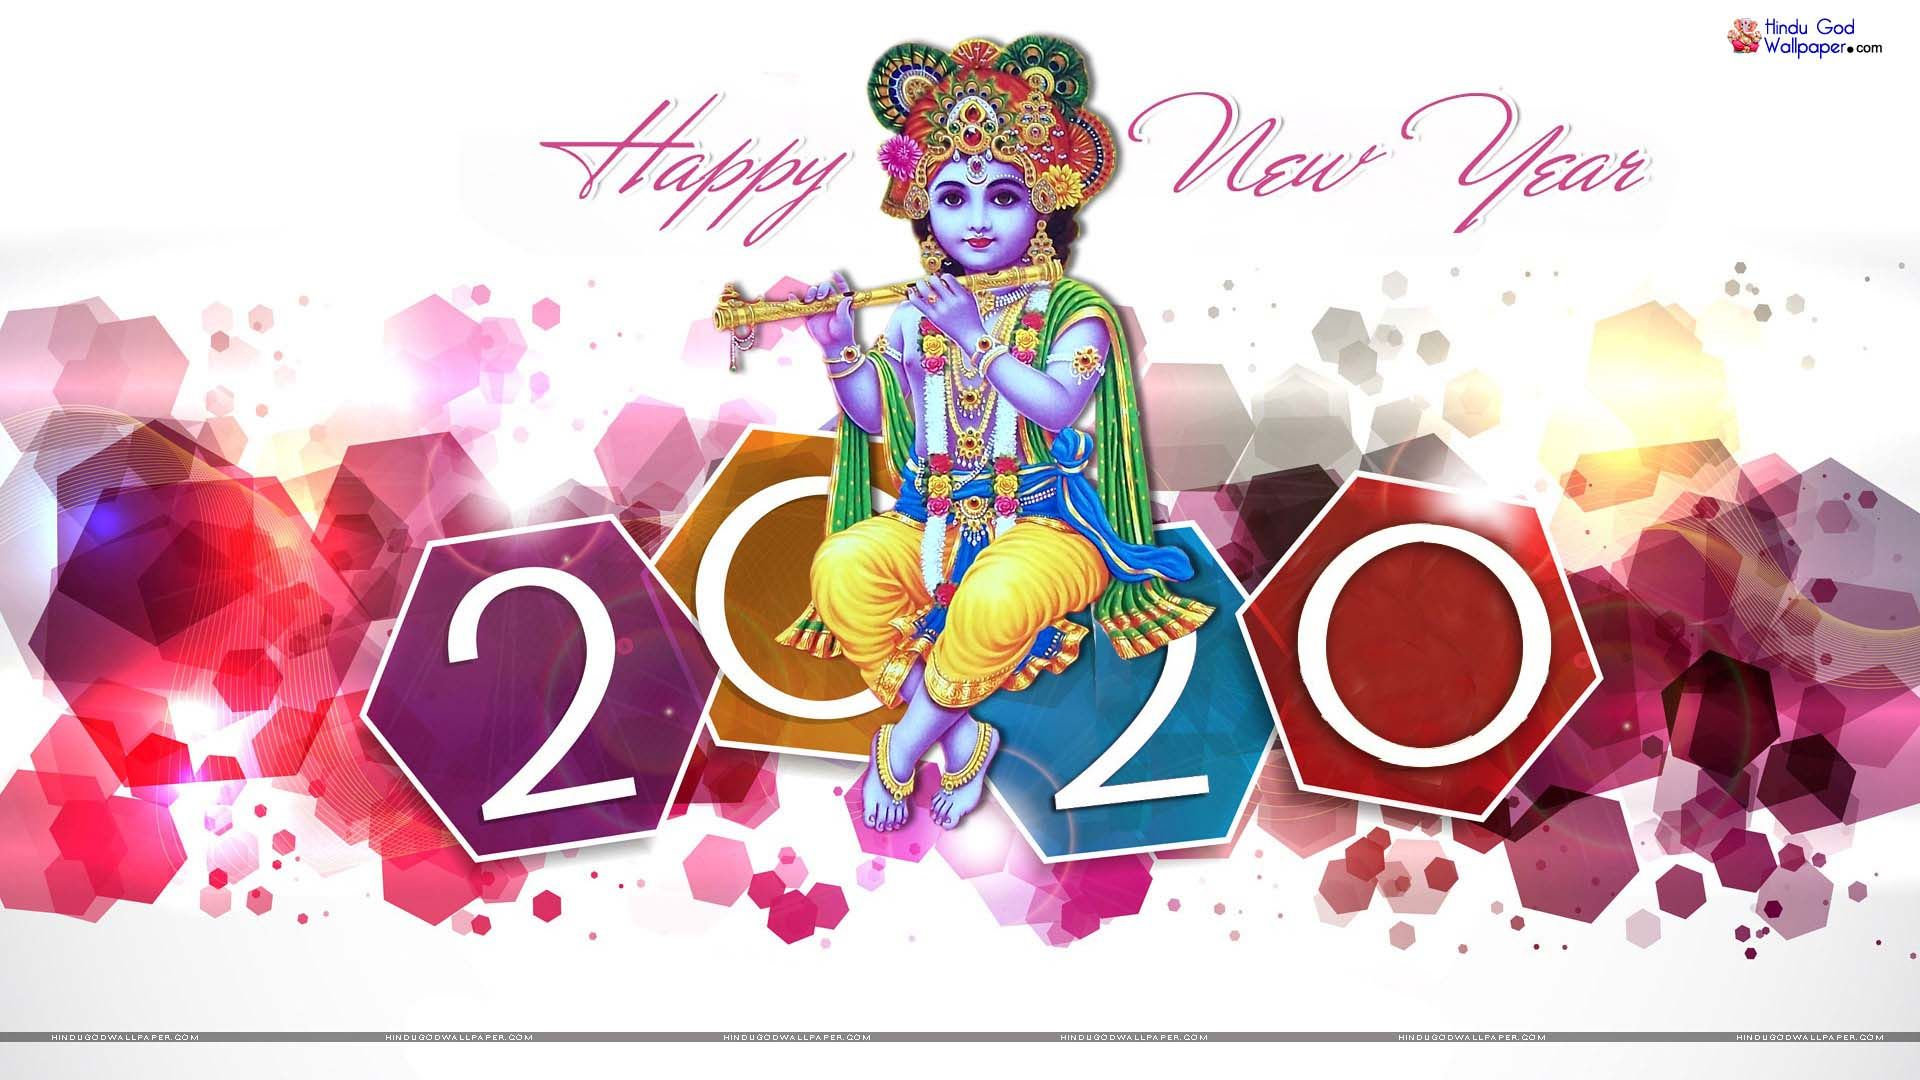 New Year With Indian God - HD Wallpaper